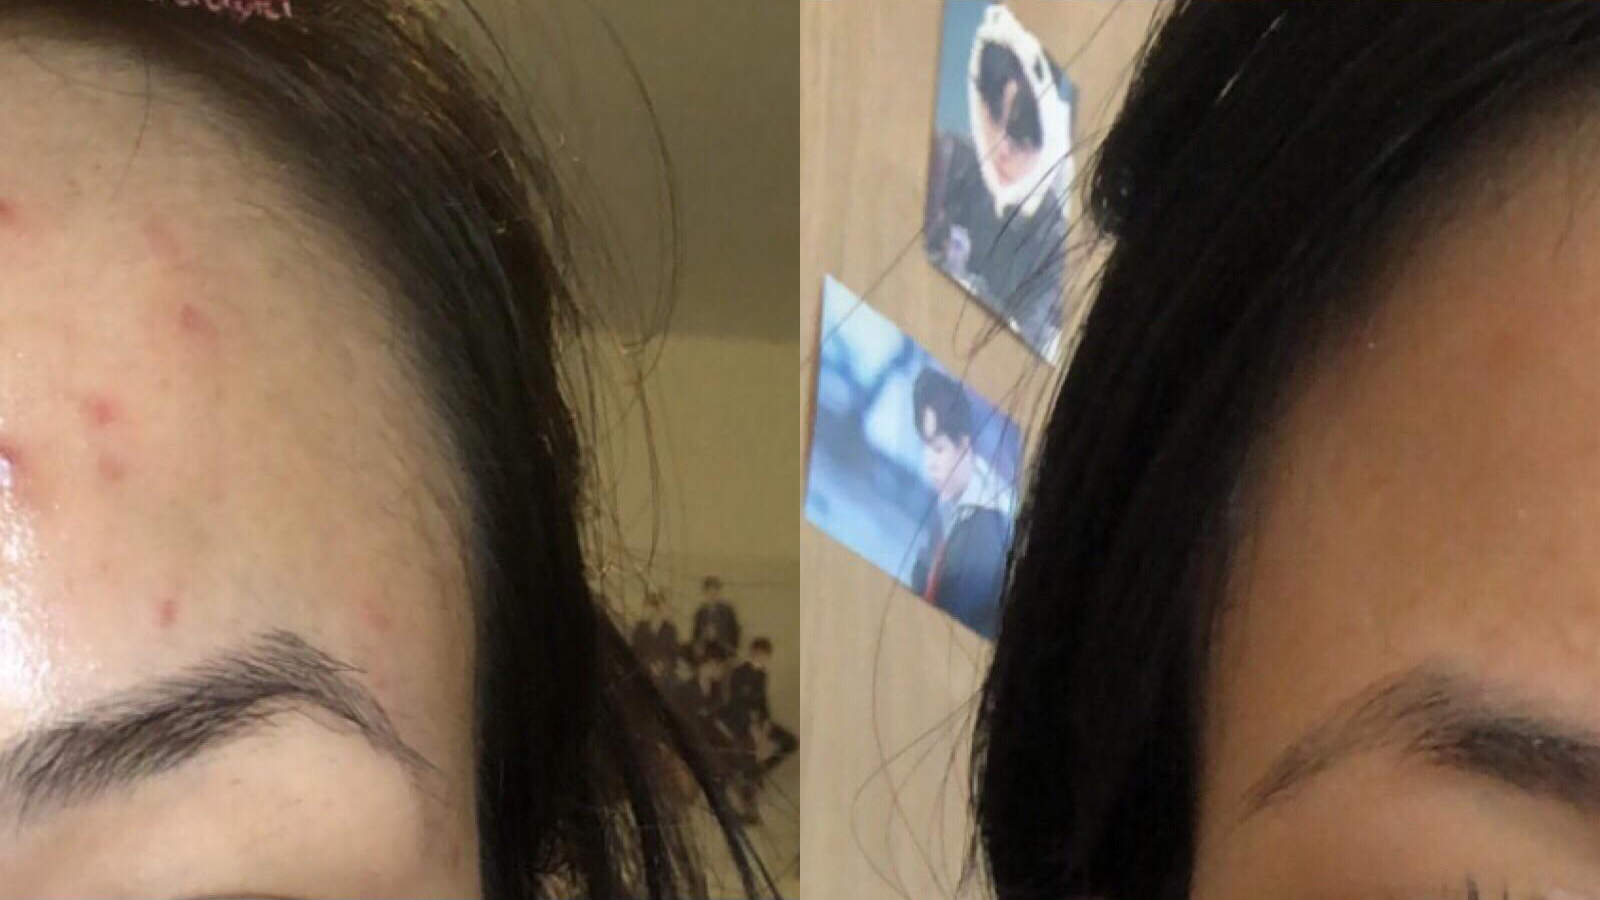 acne before-after woman health beauty dermatology skin product